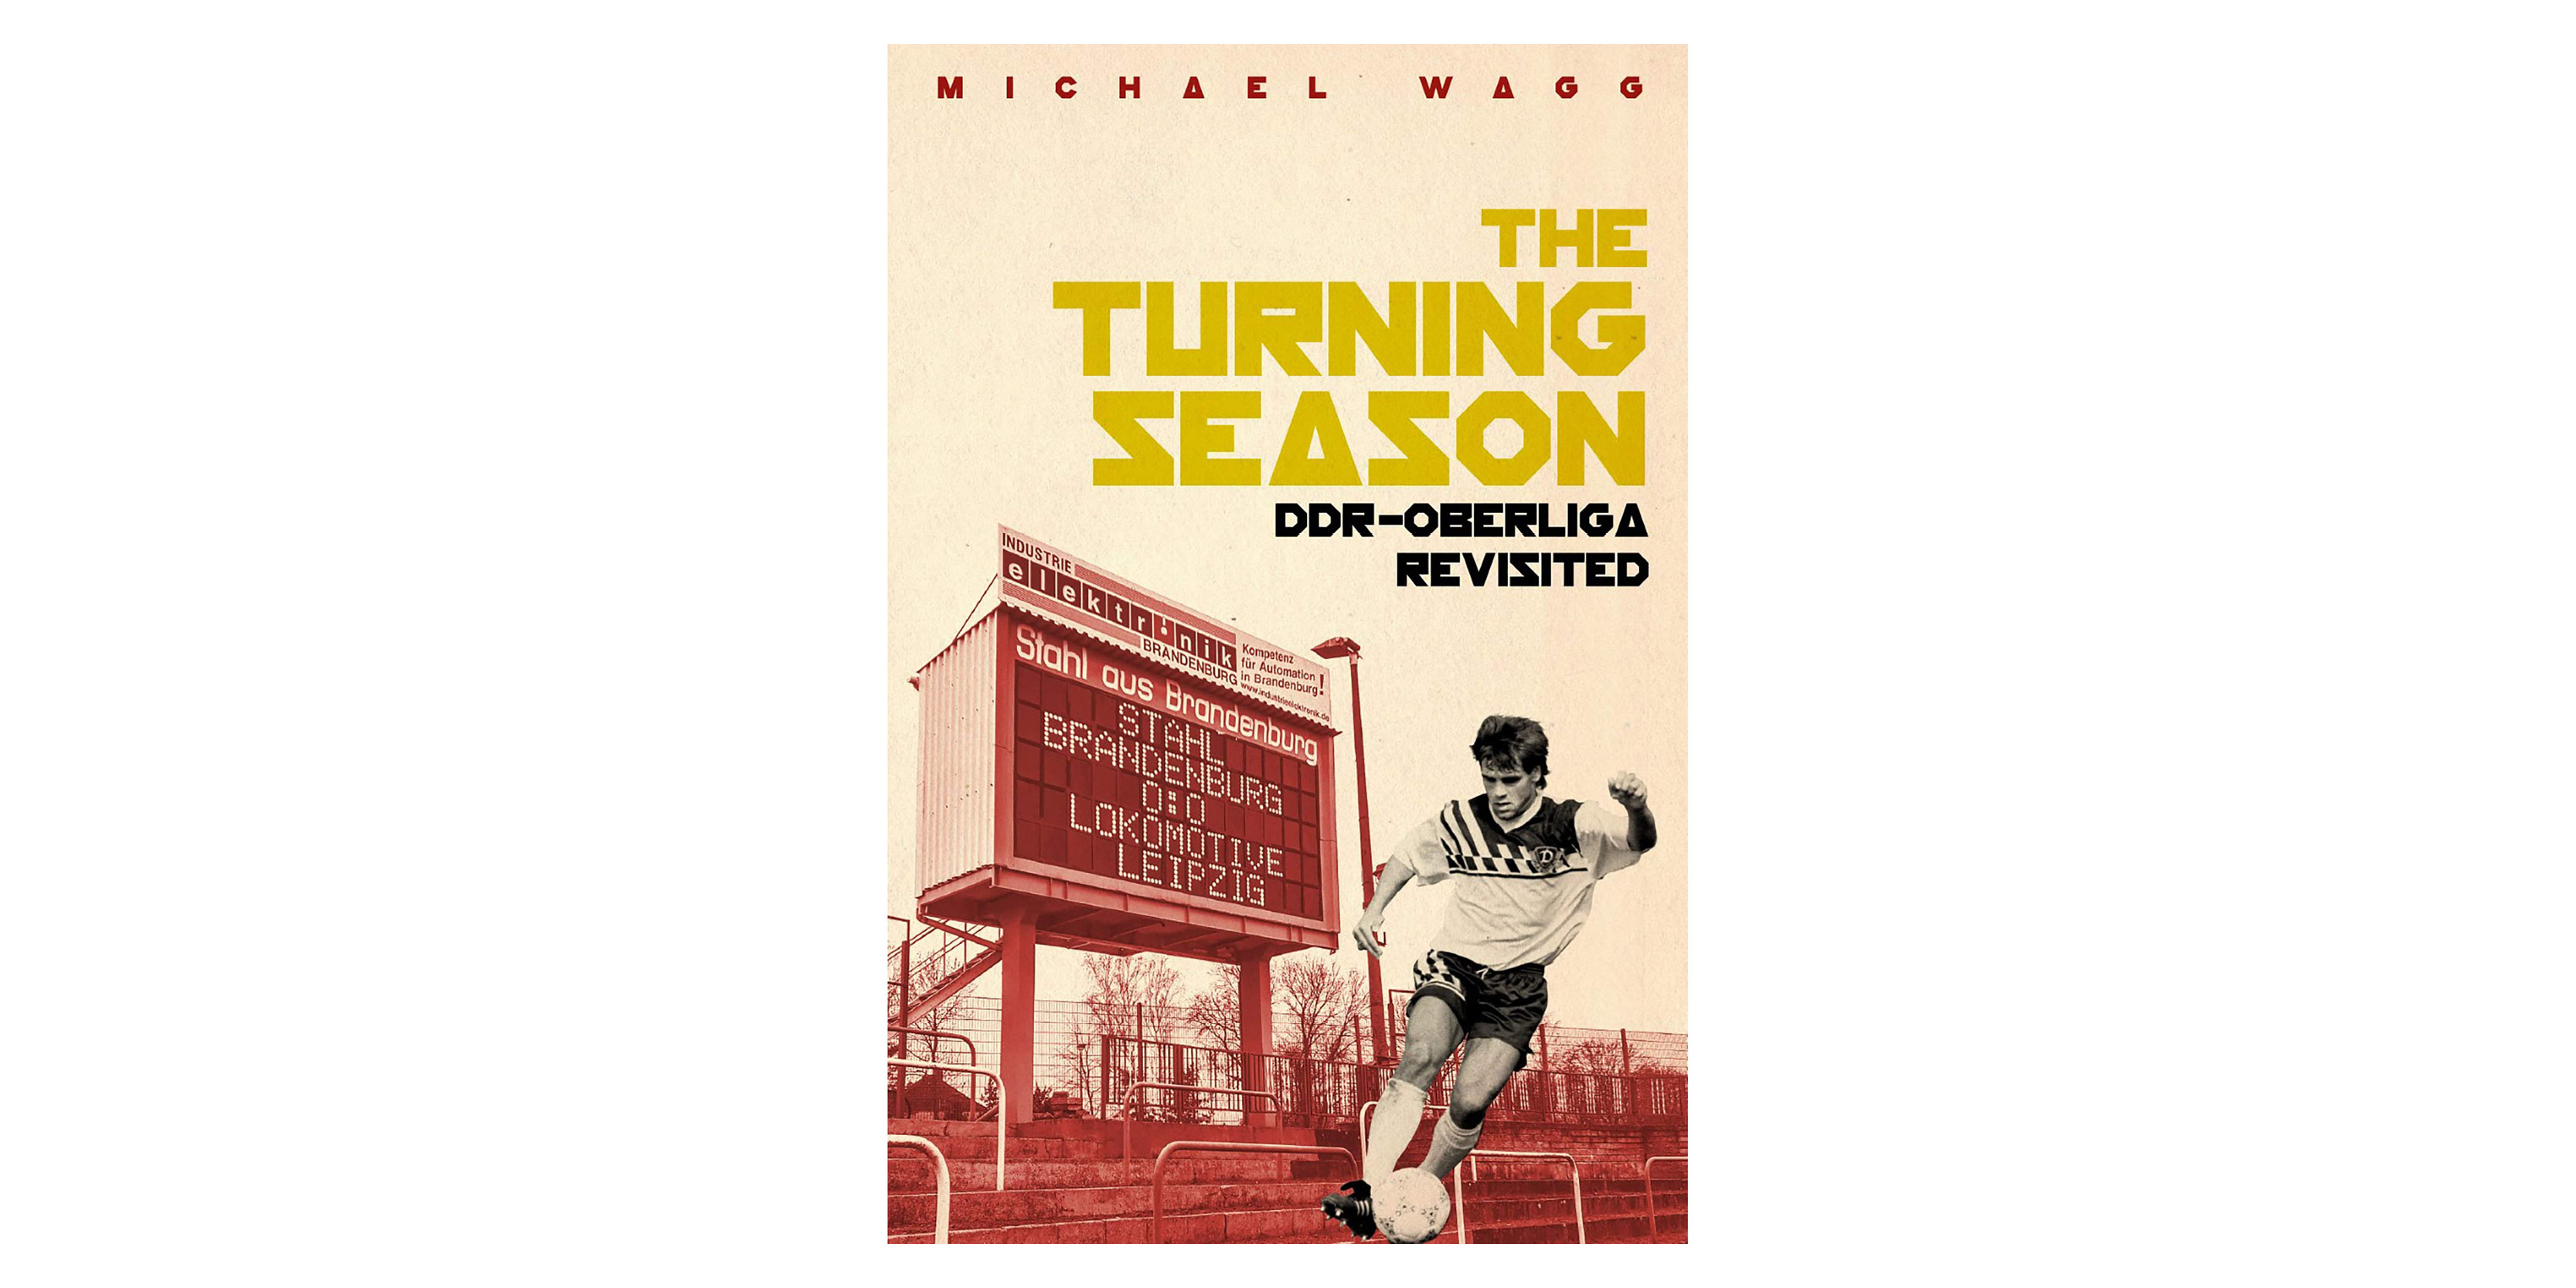 Book review - The Turning Season by Michael Wagg